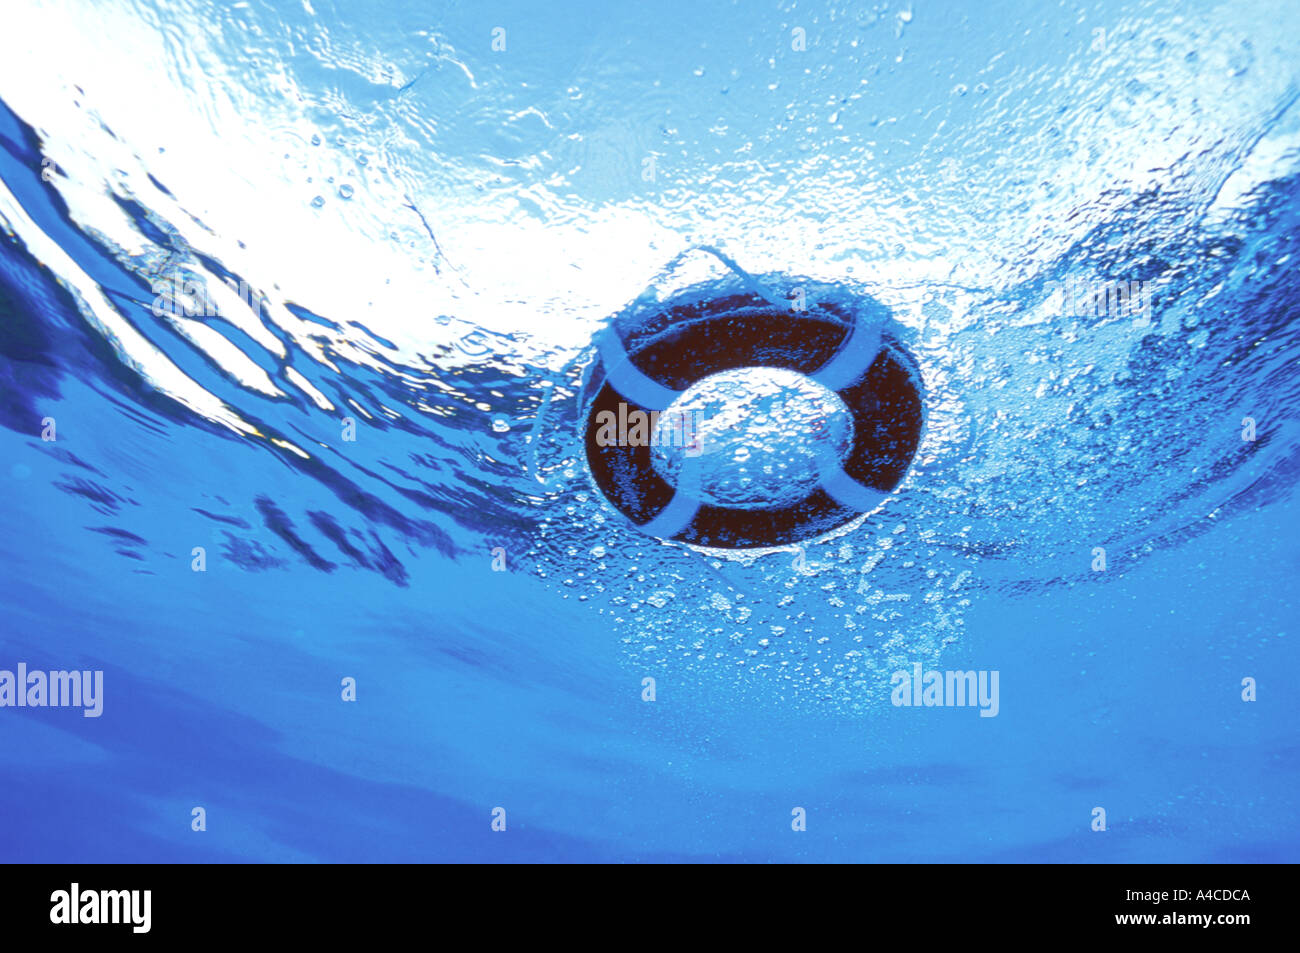 Life saving ring seen from underwater - Stock Image